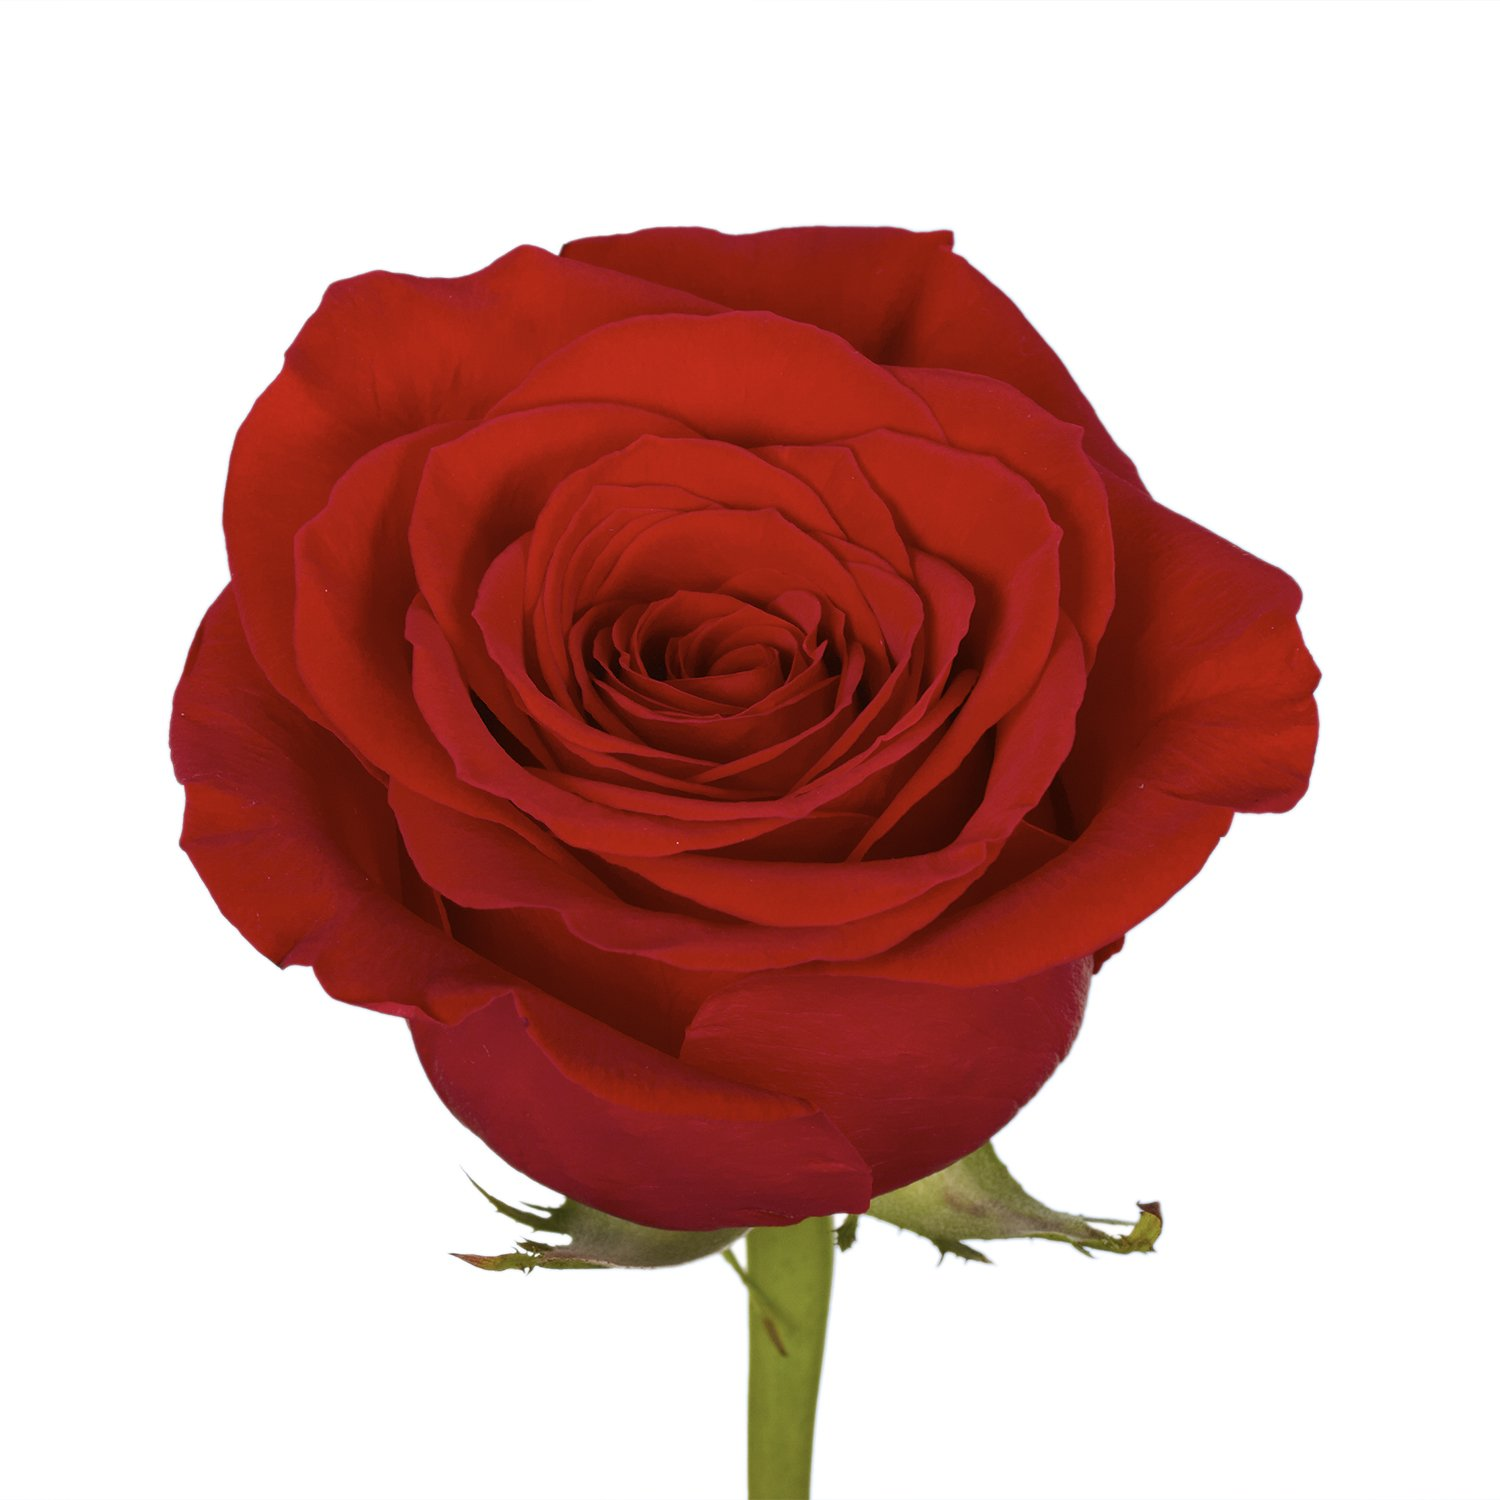 GlobalRose 100 Red Roses- Vibrant and Bright Red Blooms- Fresh Flowers Express Delivery) by GlobalRose (Image #2)